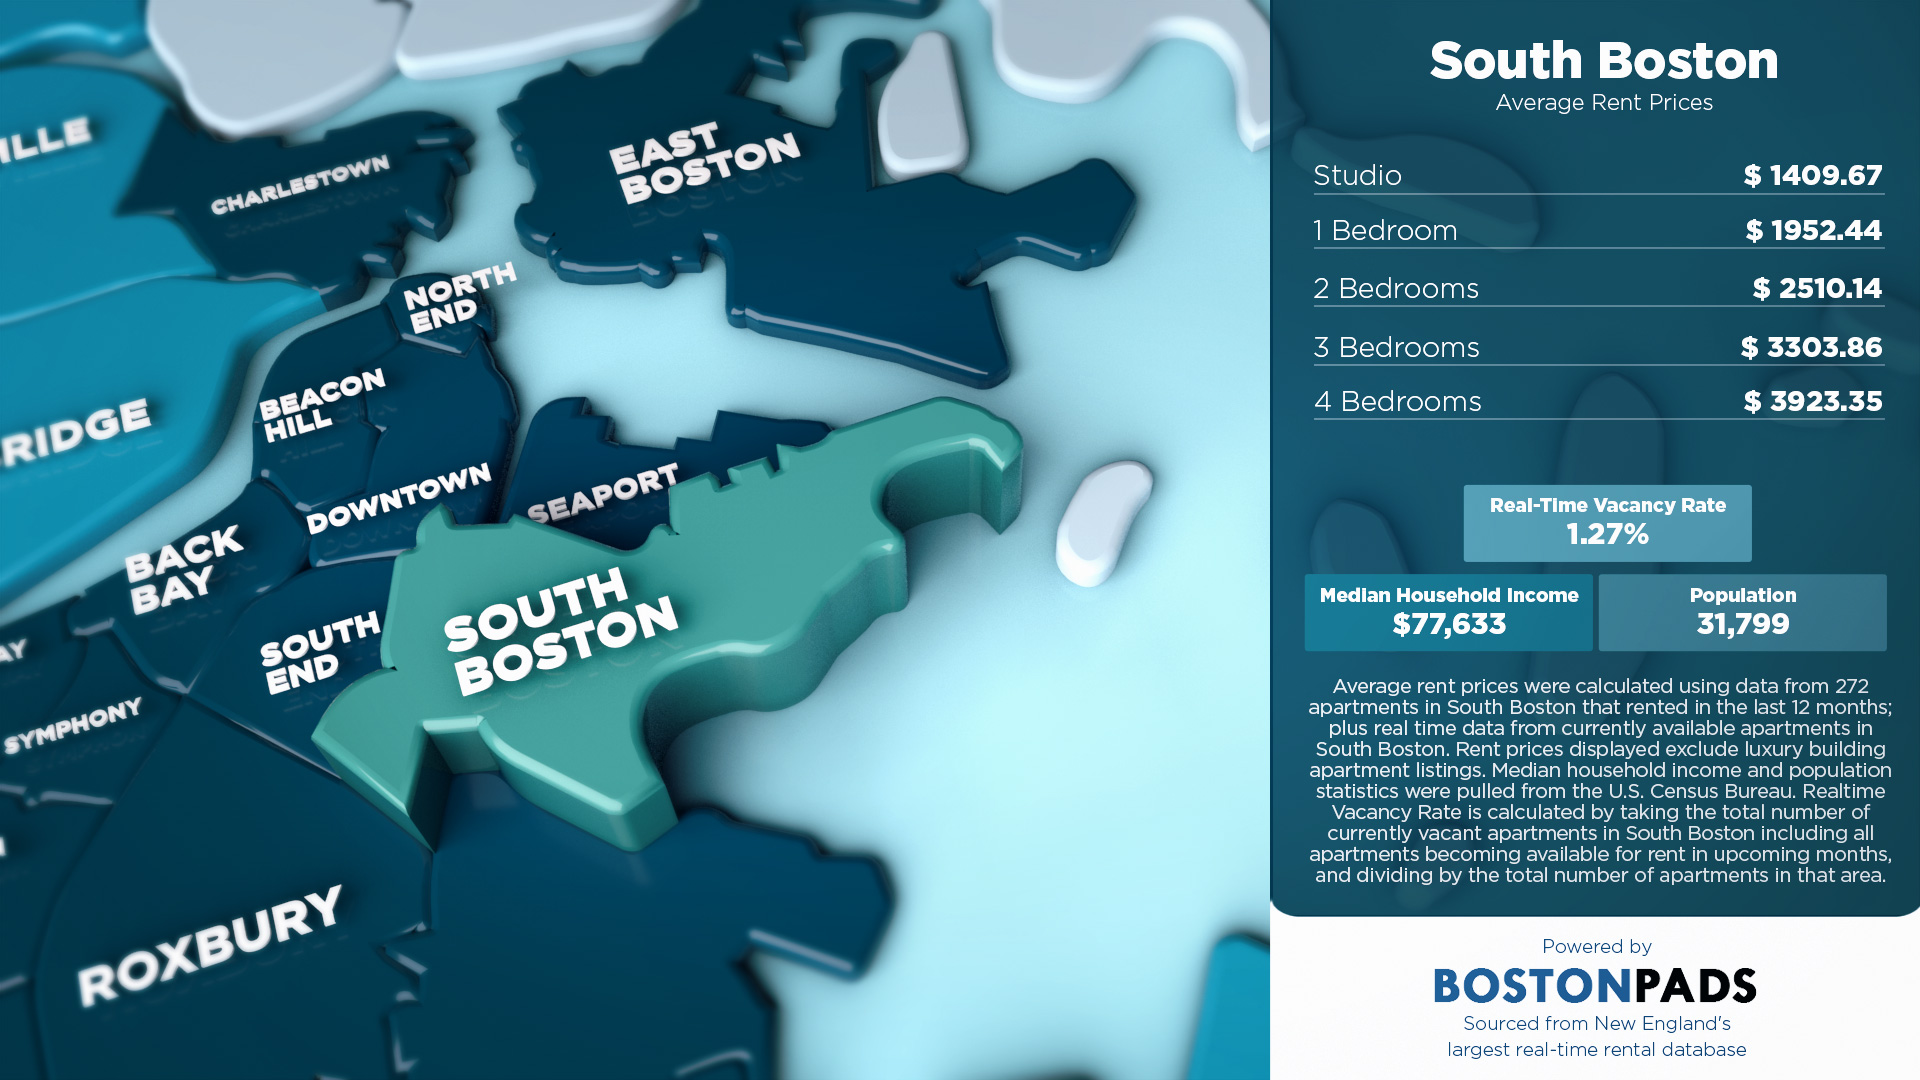 Average Rent Prices in South Boston